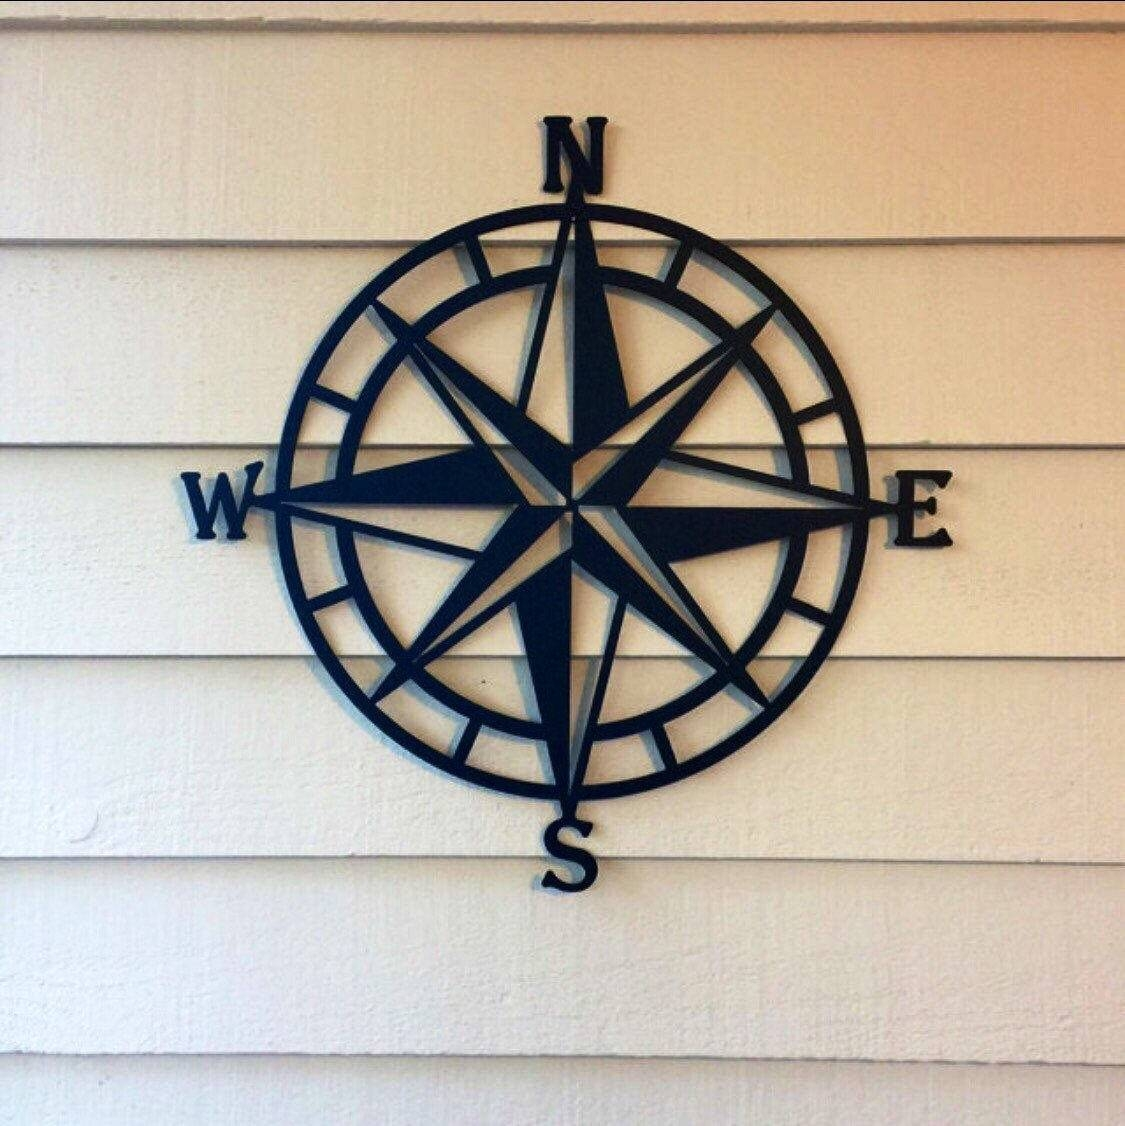 Metal Wall Art Decor | Roselawnlutheran Intended For Best And Newest Beach Metal Wall Art (View 4 of 20)